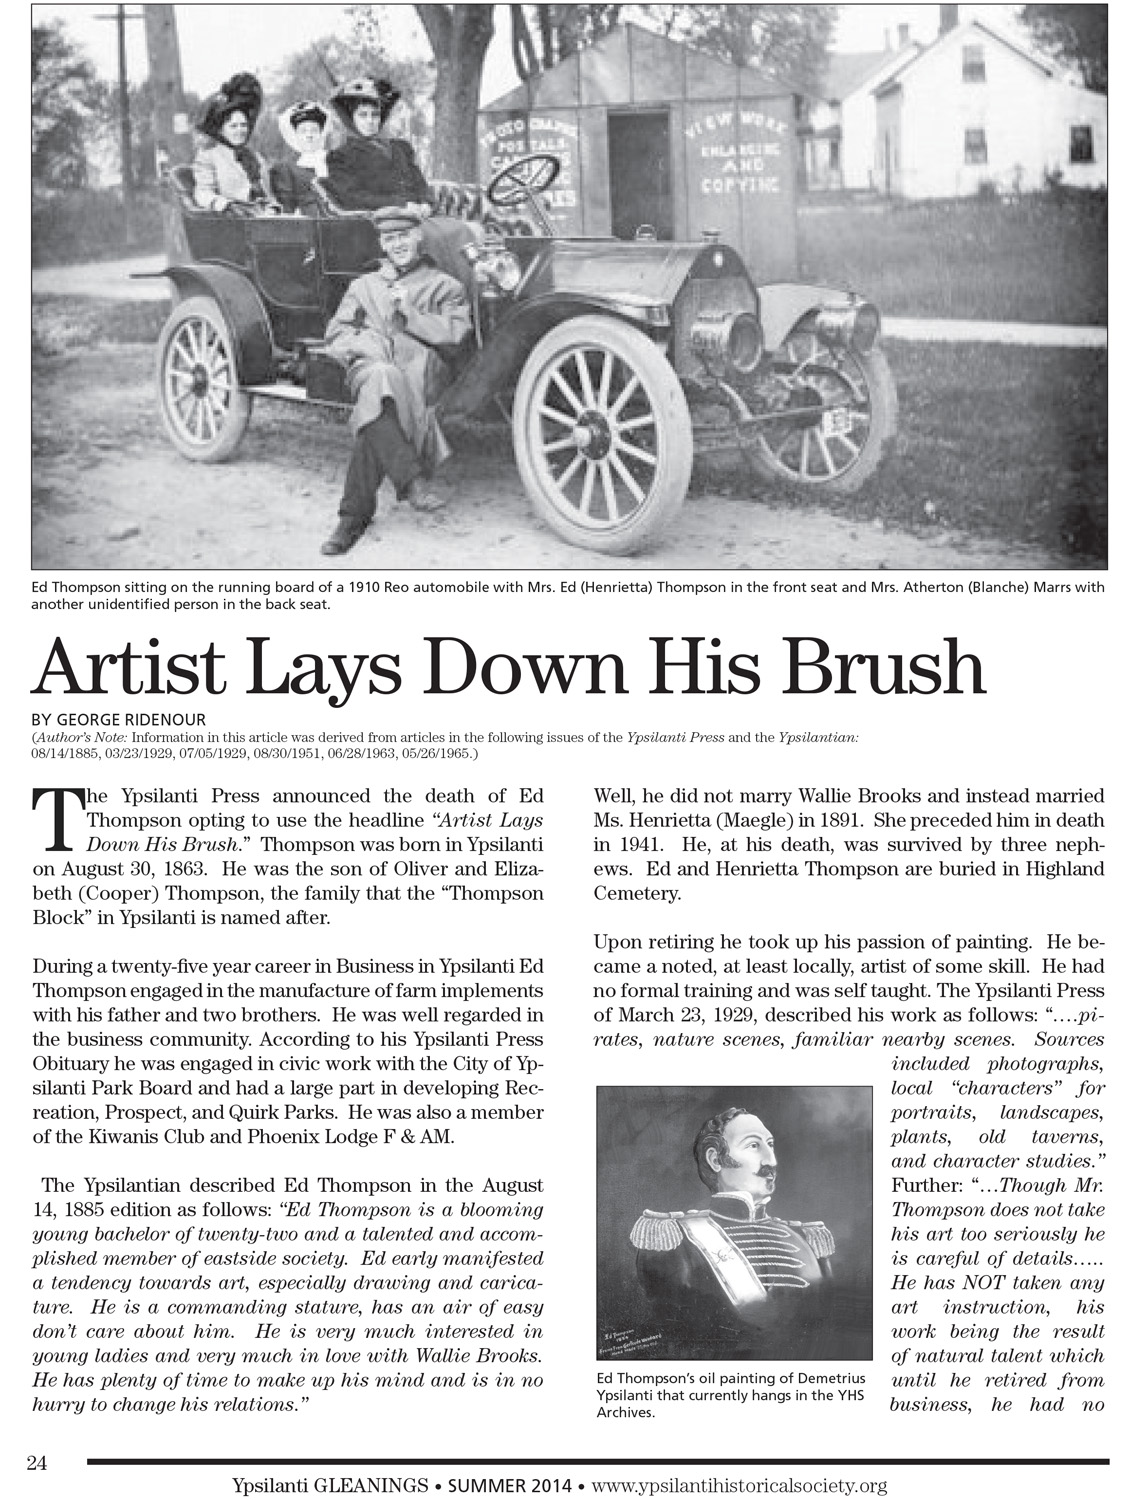 Artist Lays Down His Brush image